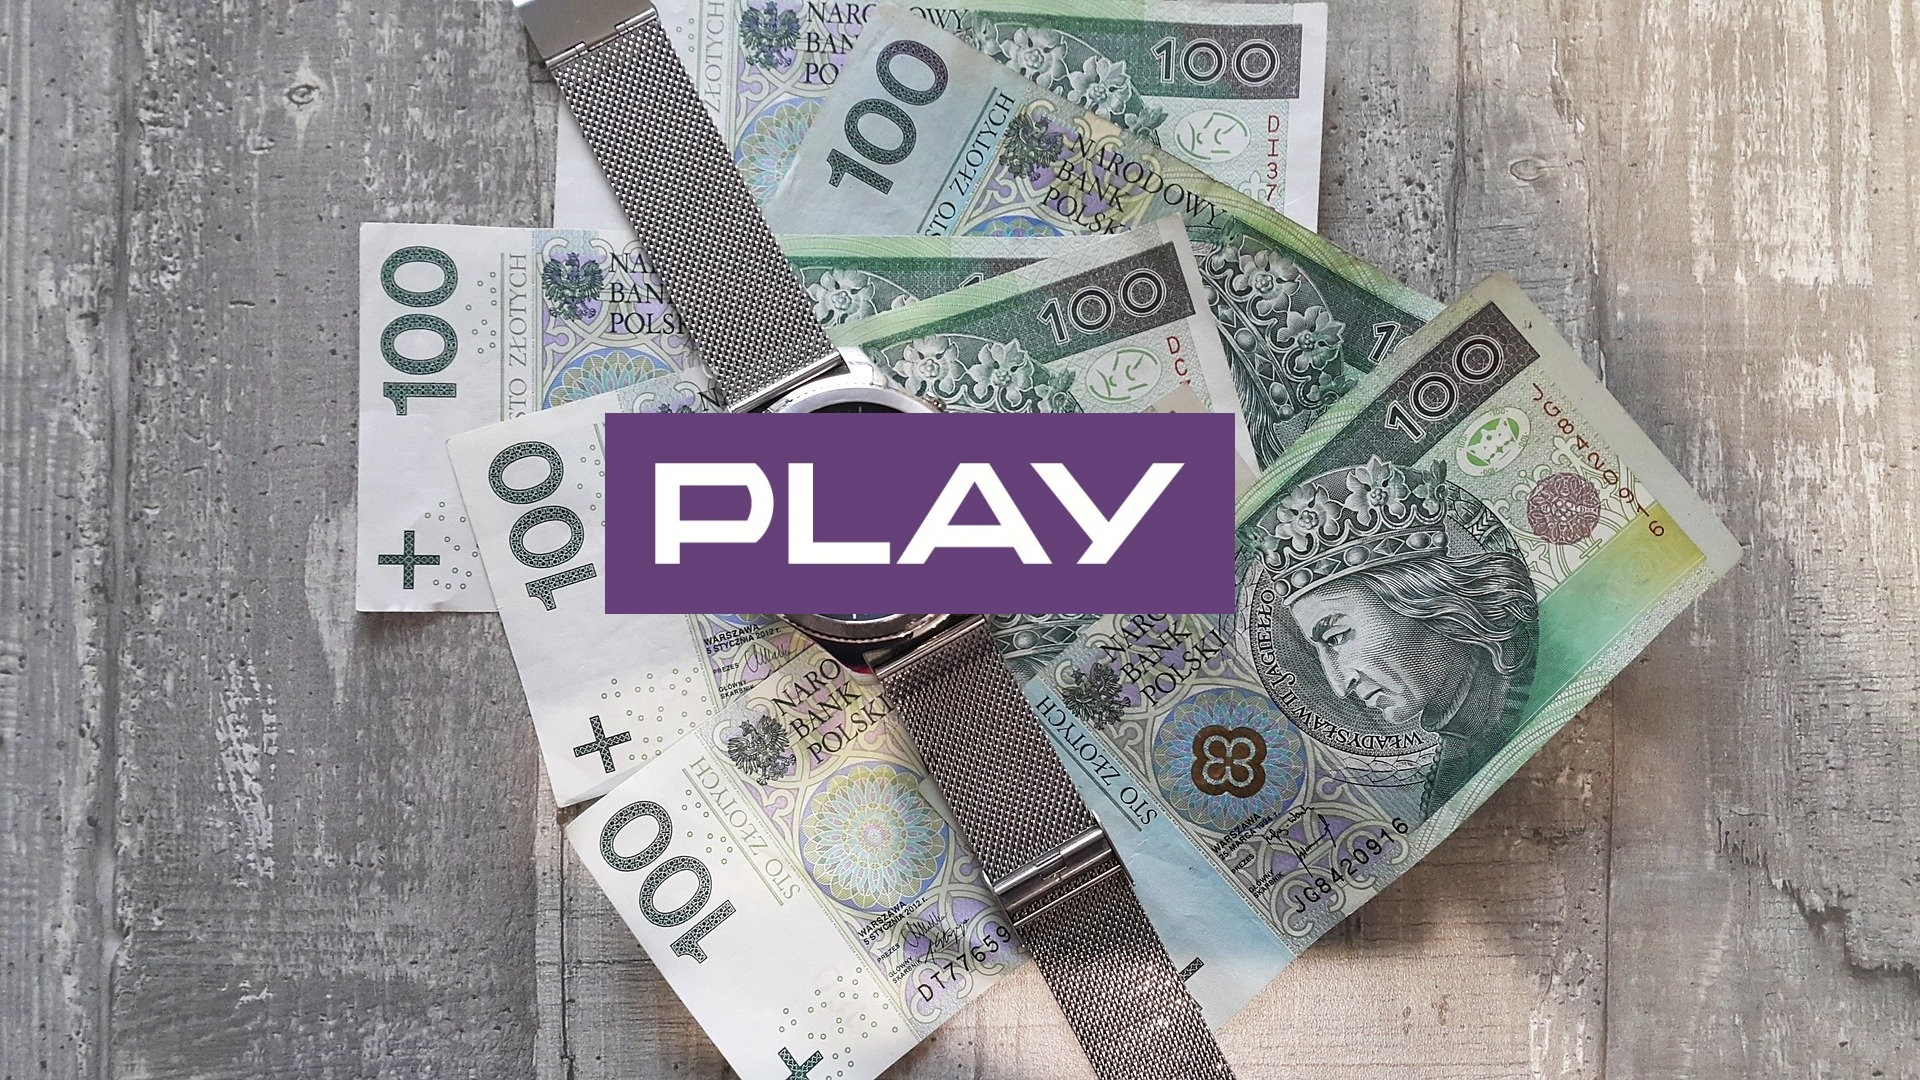 Play logo money pieniądze kasa